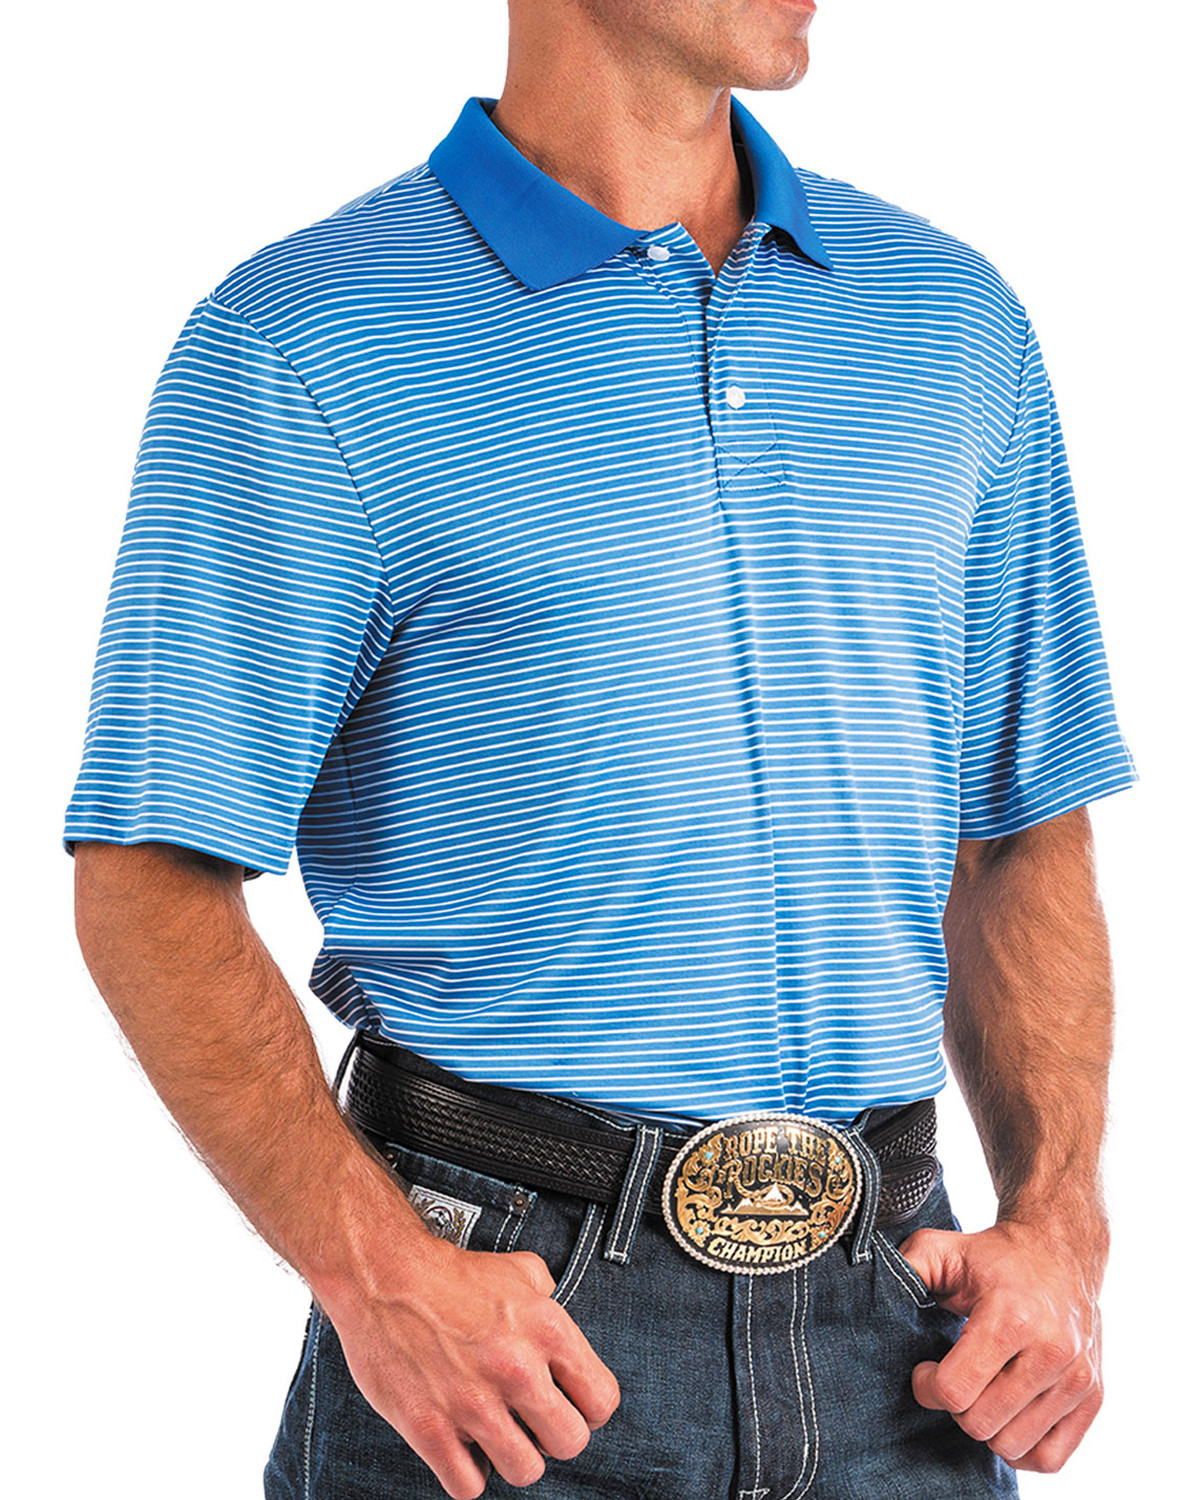 641014366a9 Cinch mens arenaflex blue striped athletic polo boot barn JPG 1200x1500 Arenaflex  cinch athletic logo